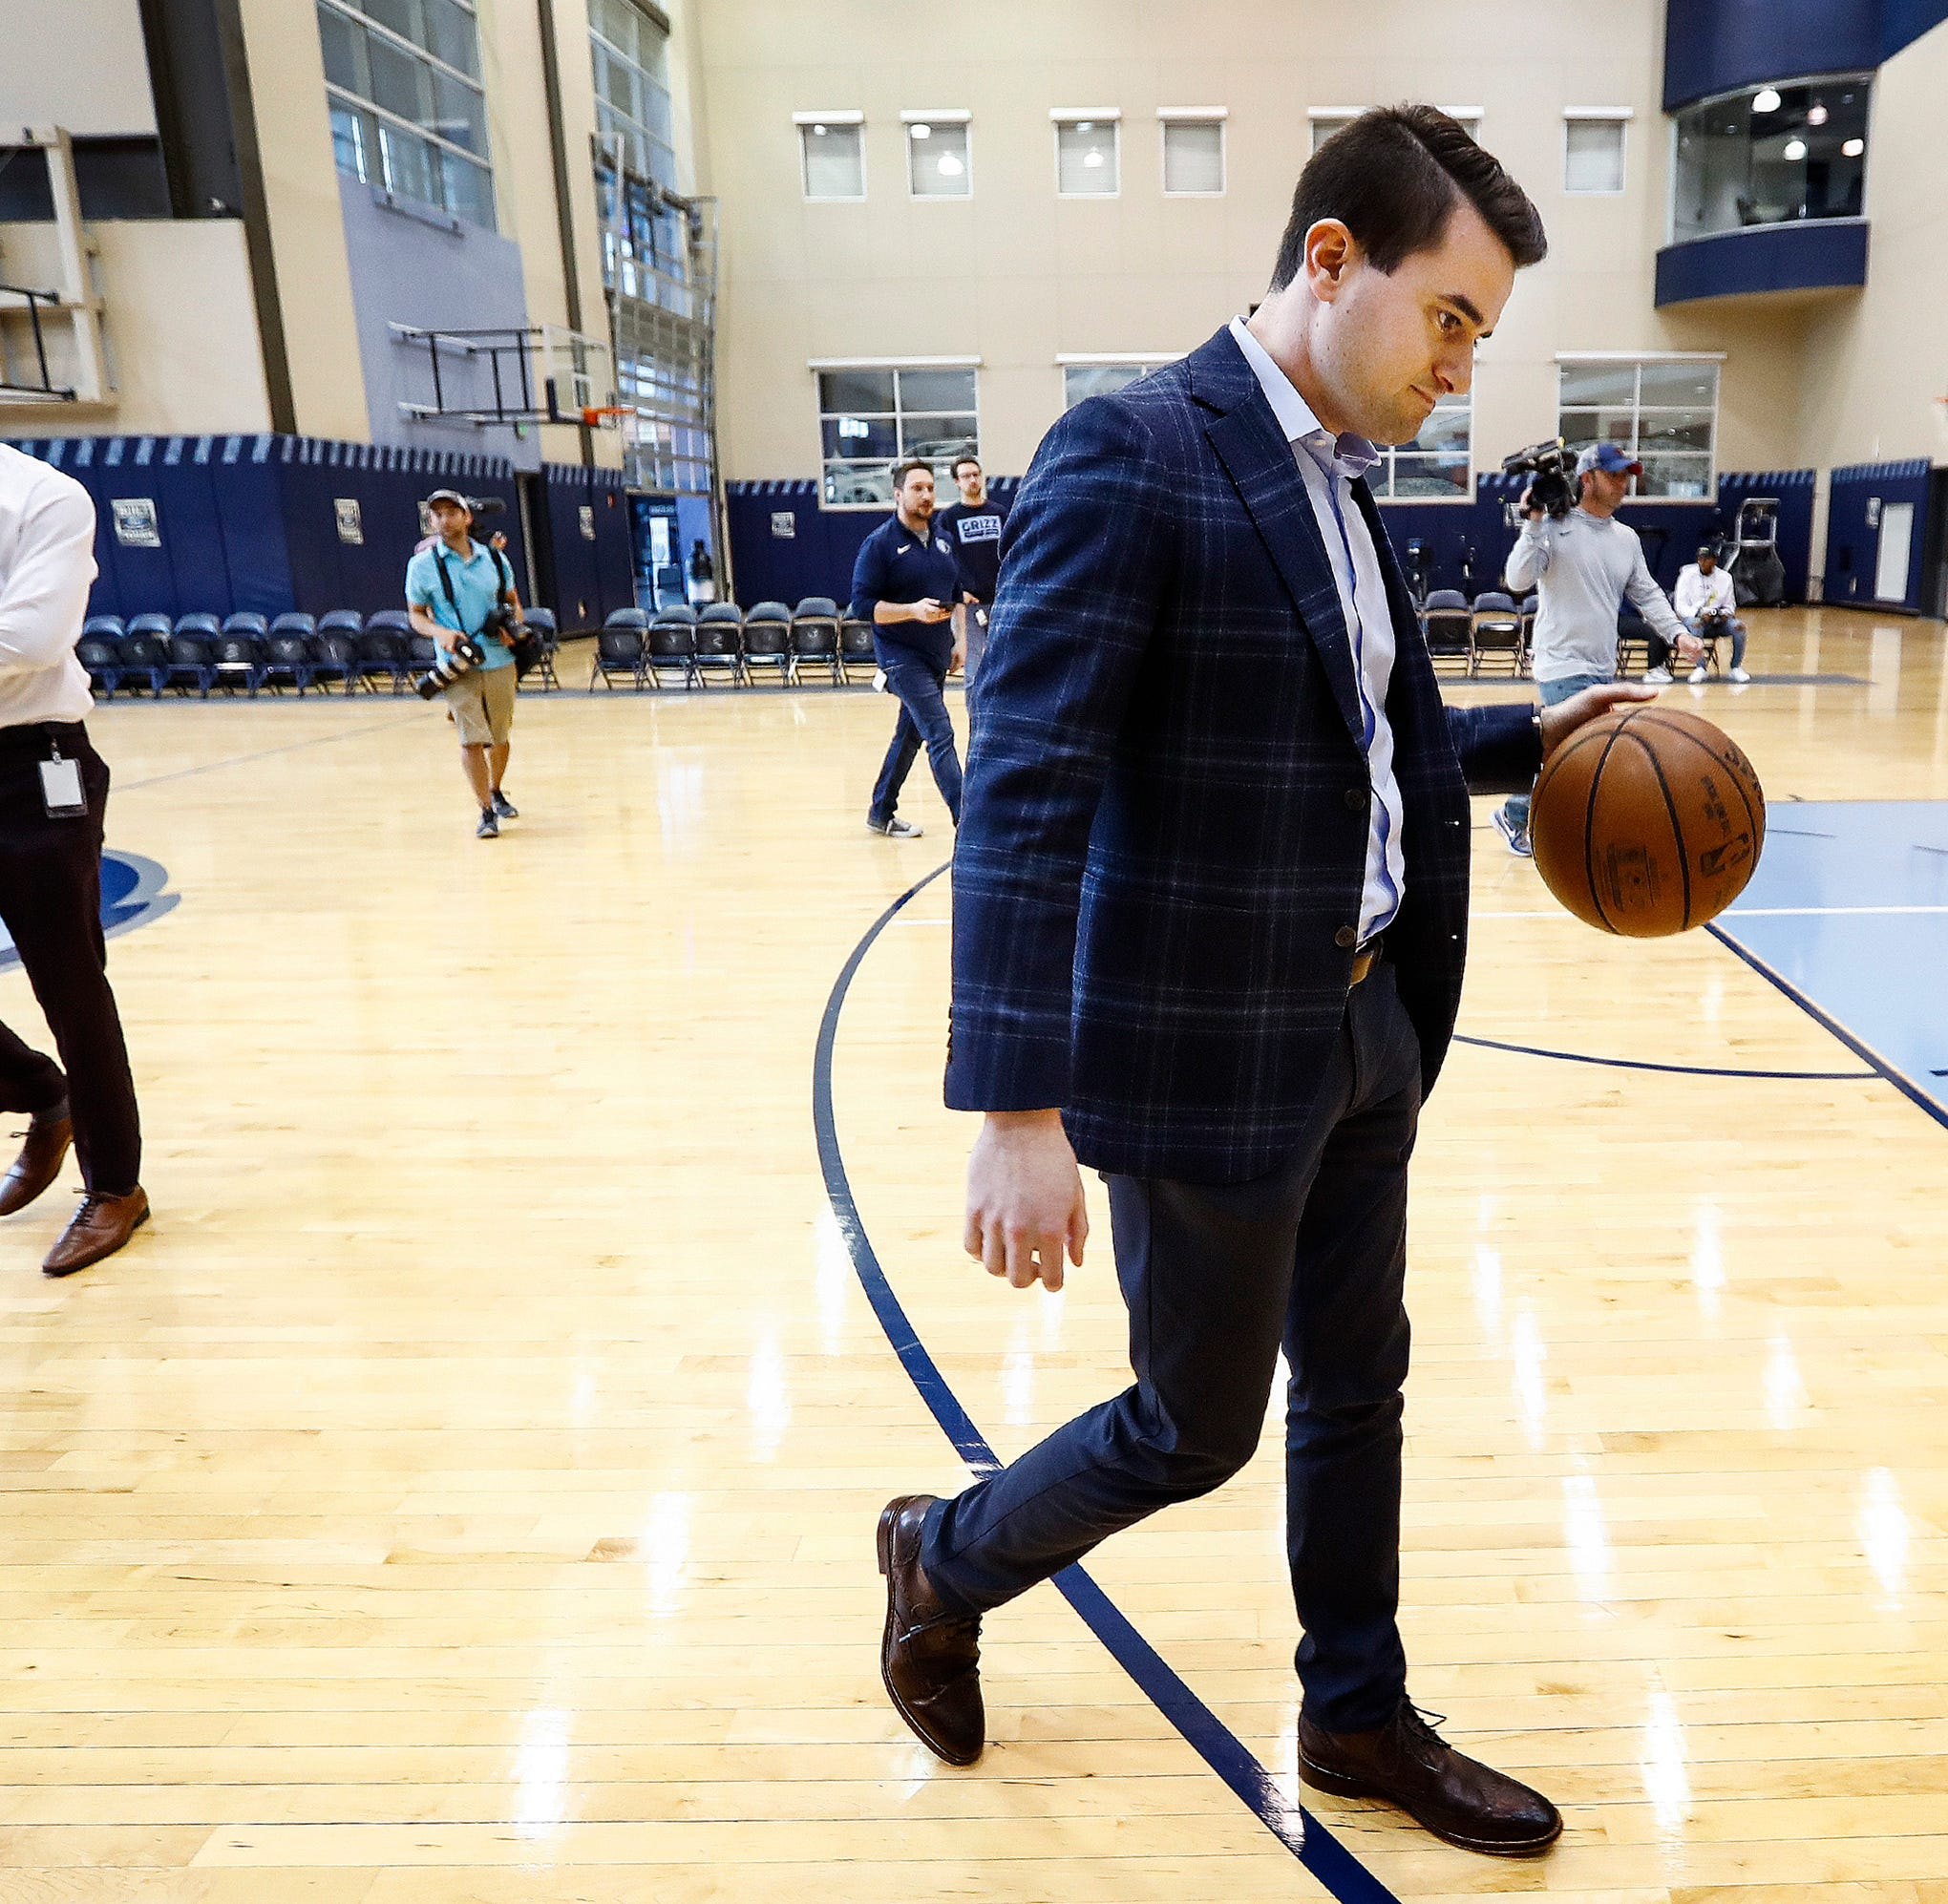 Zach Kleiman is the 30-year-old prodigy who will determine the Memphis Grizzlies future